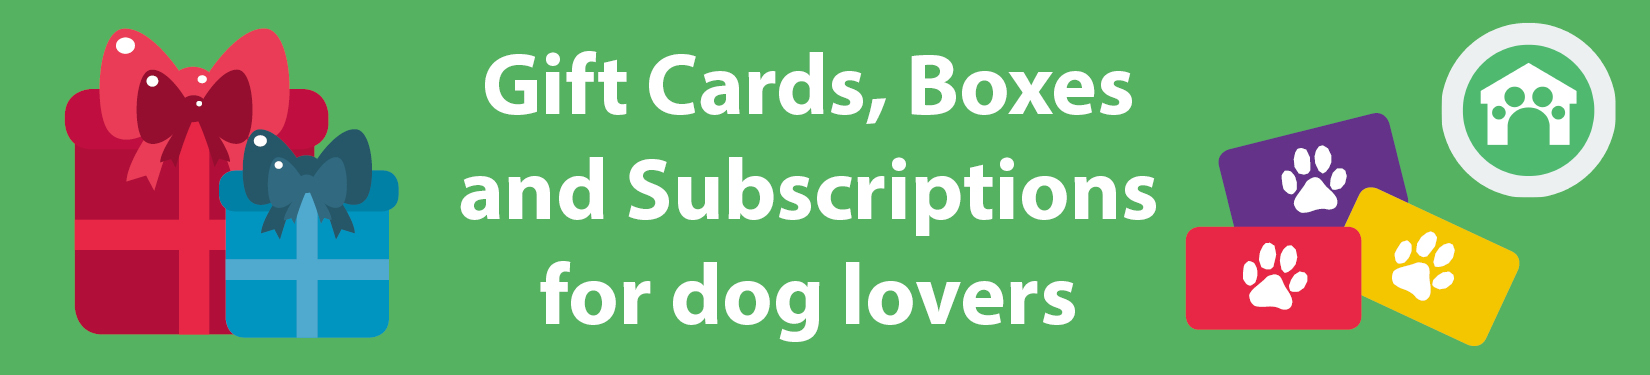 Gift cards, boxes and subscription gifts for dog lovers header image